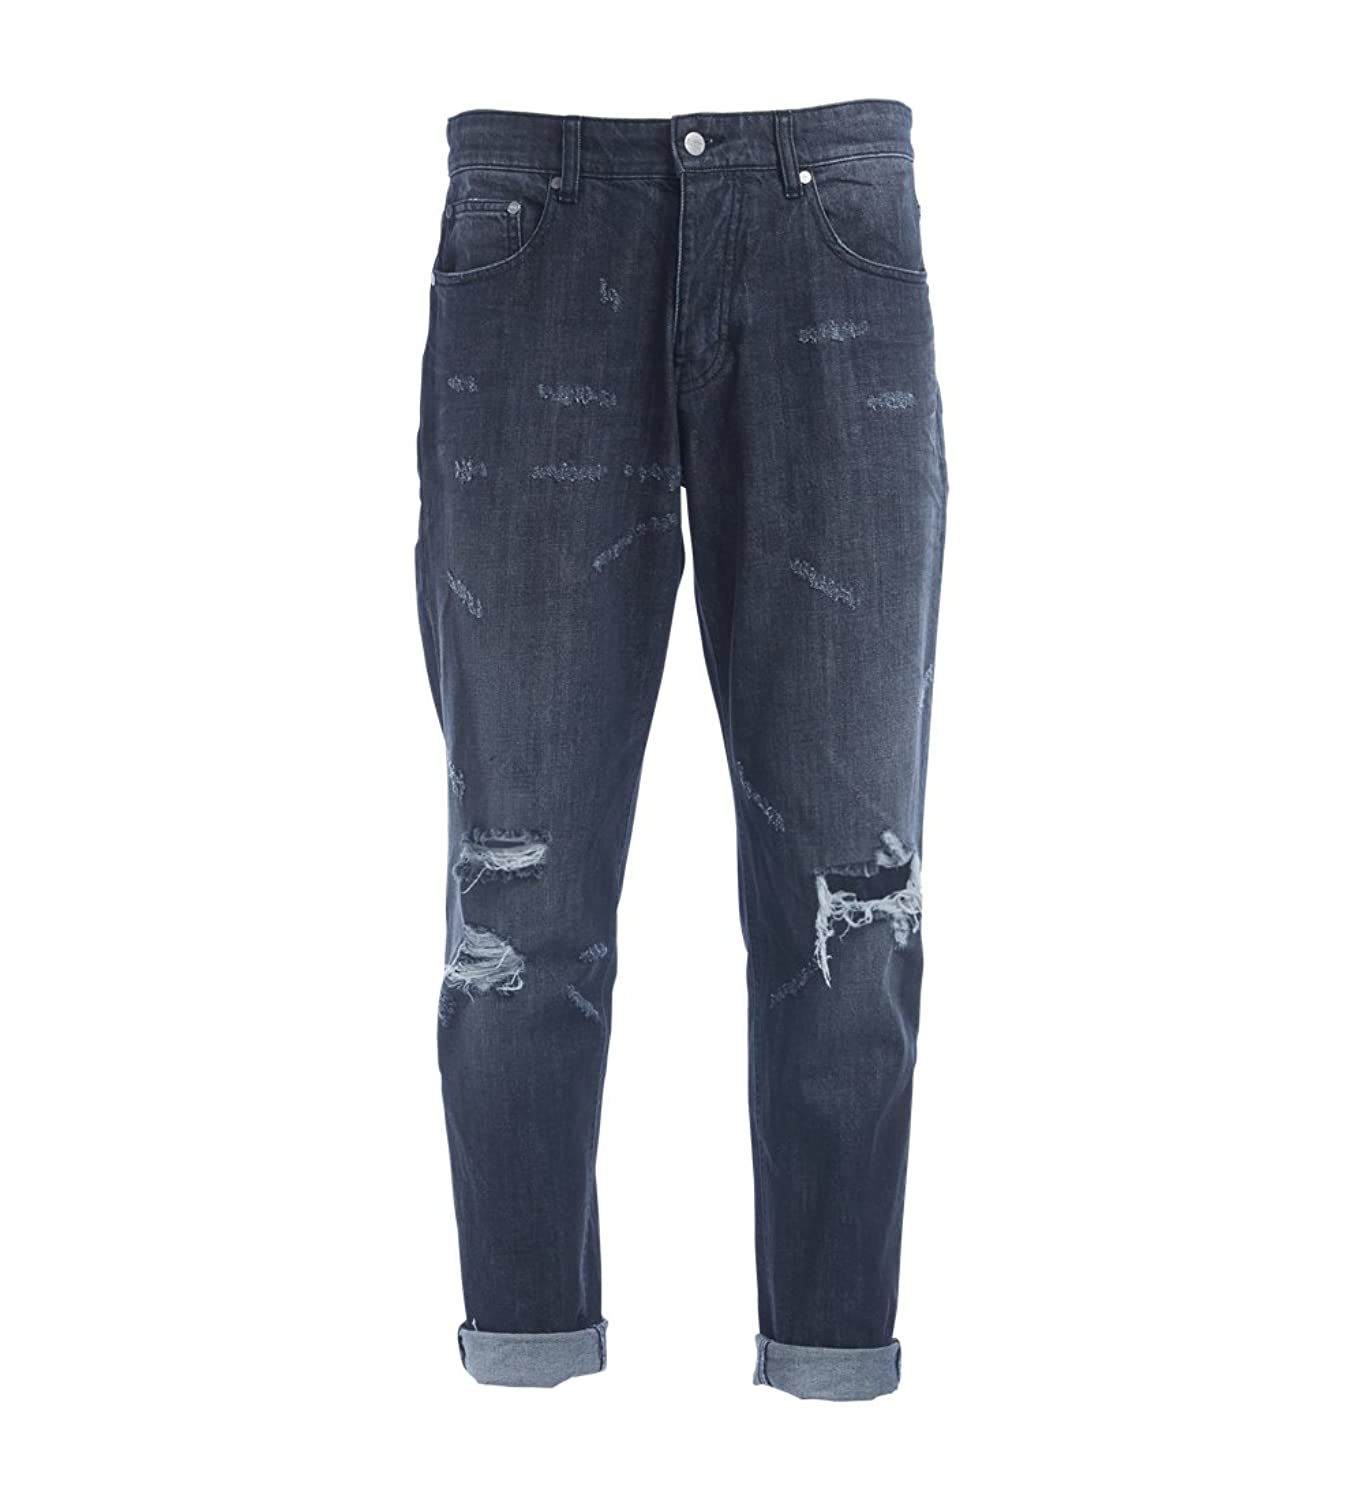 Ami Alexandre Mattiussi washed grey jeans